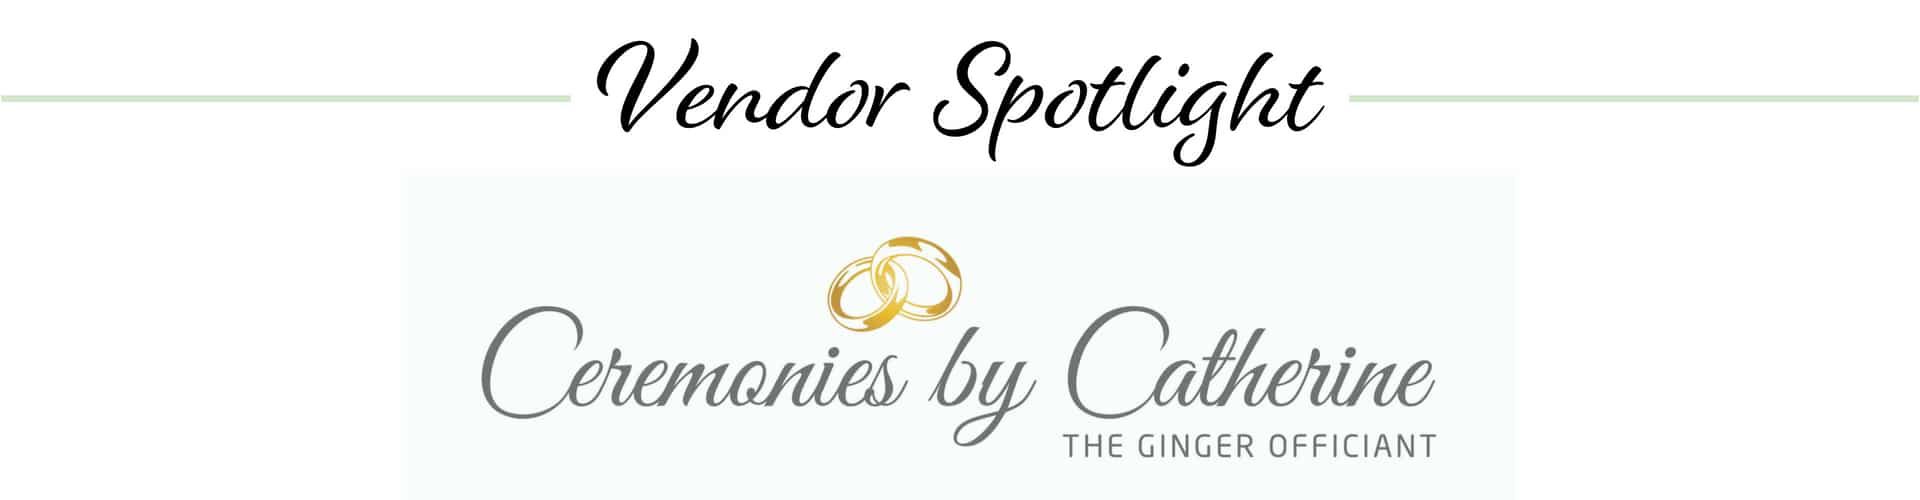 Vendor Spotlight Ceremonies by Catherine - The Ginger Officiant